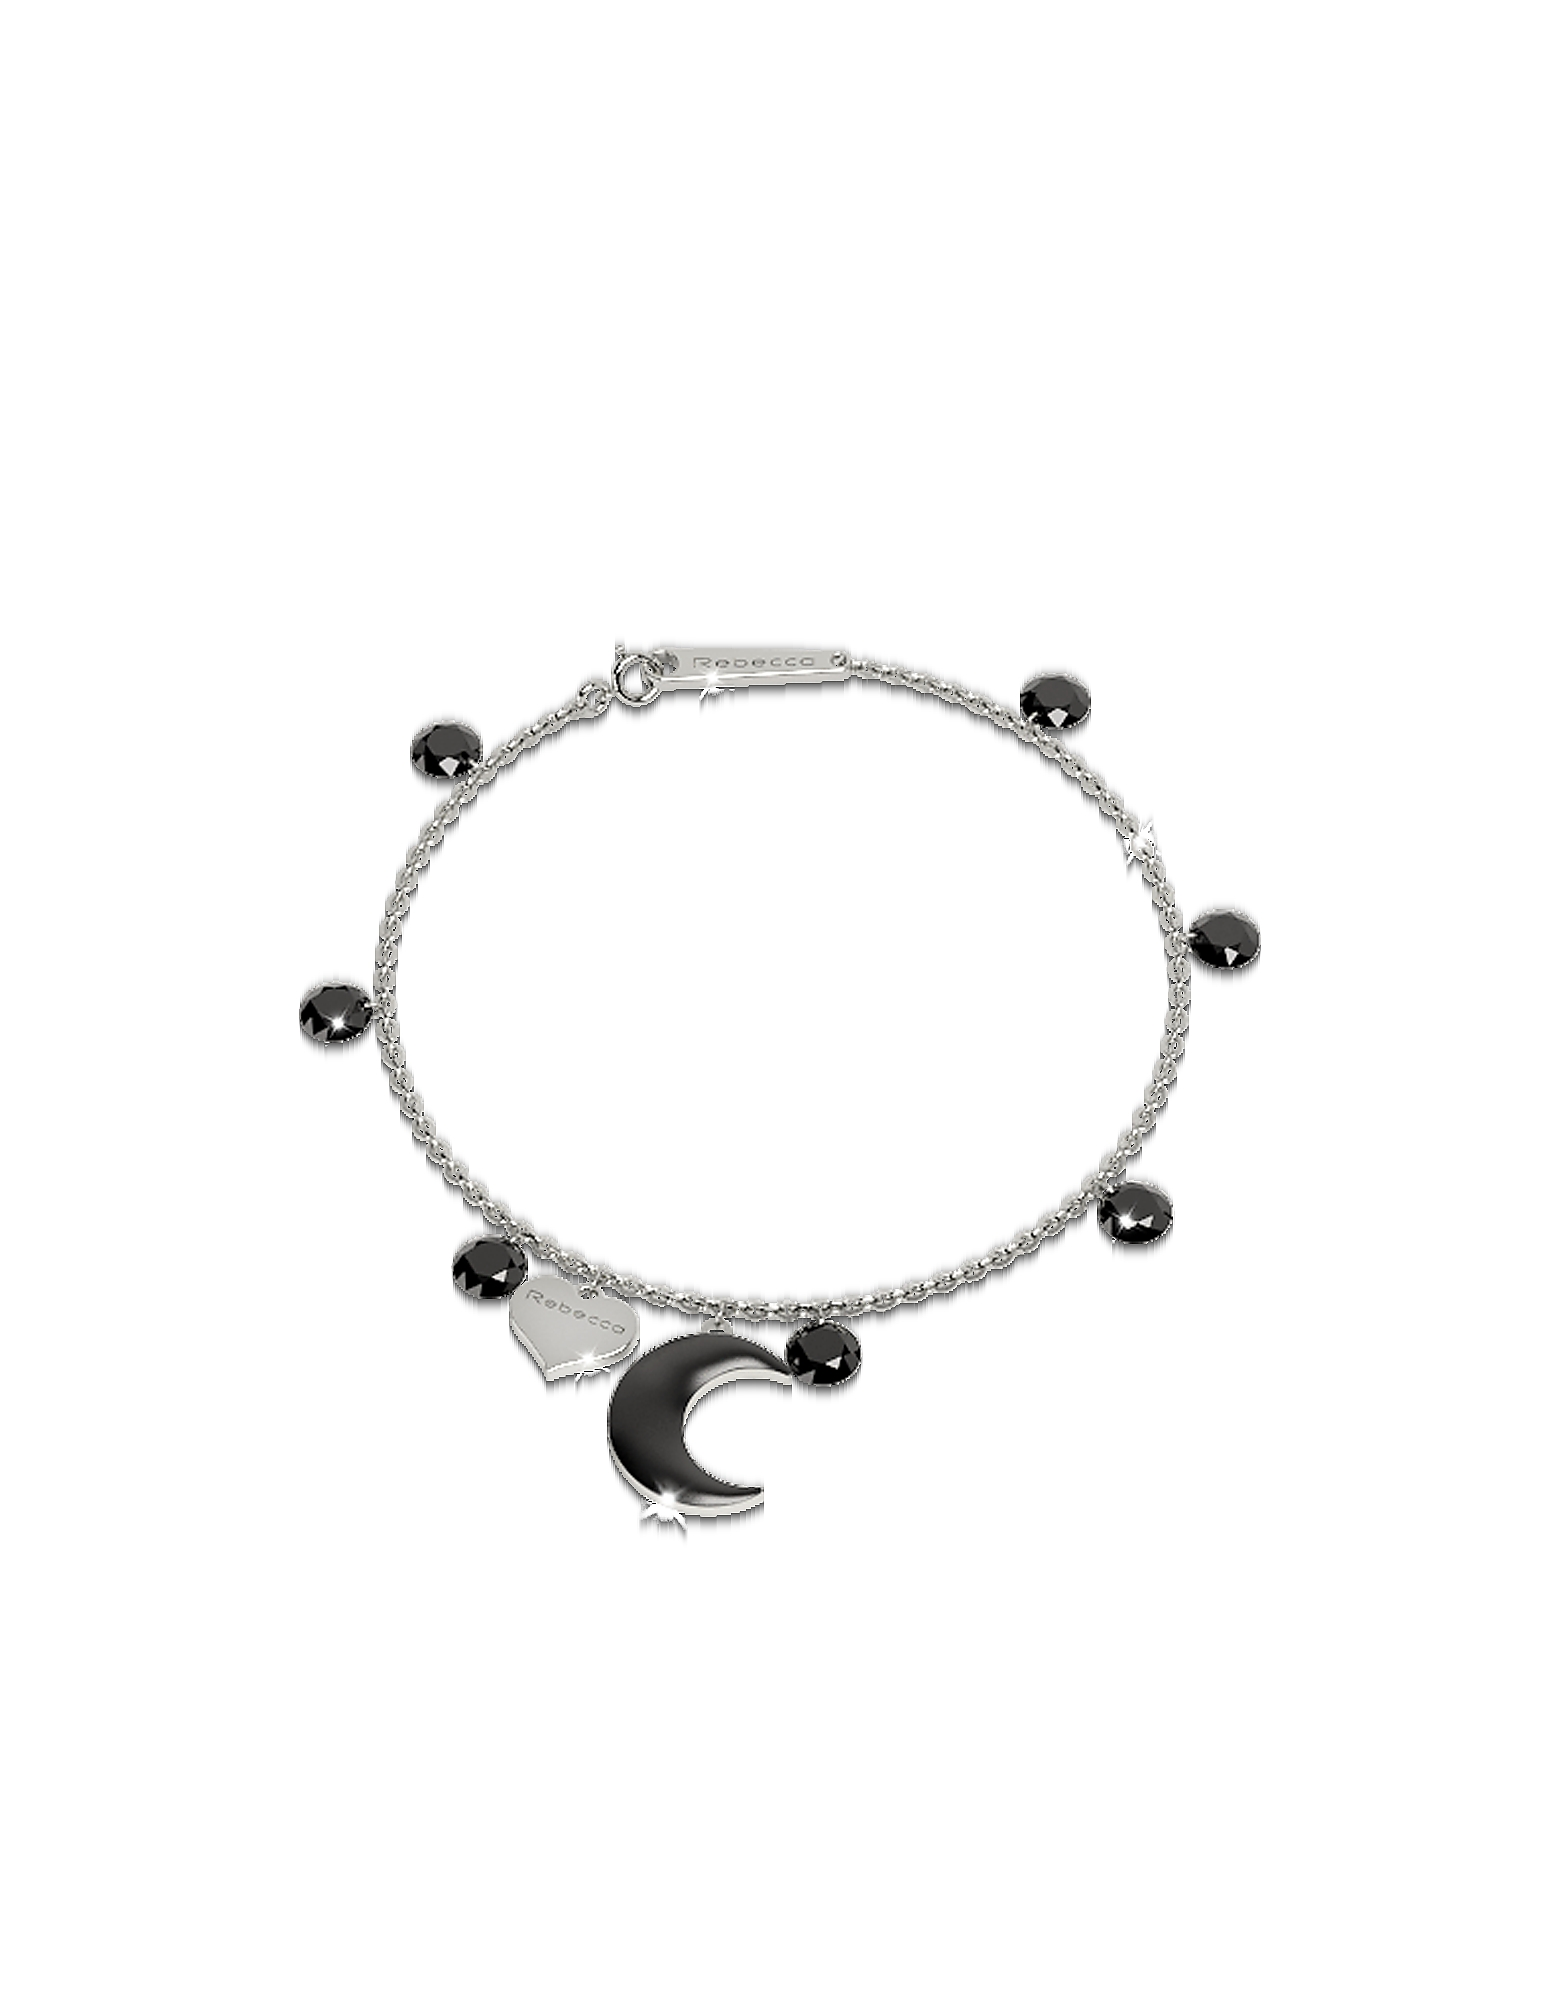 Lucciole Sterling Silver Bracelet w/Black Crystals